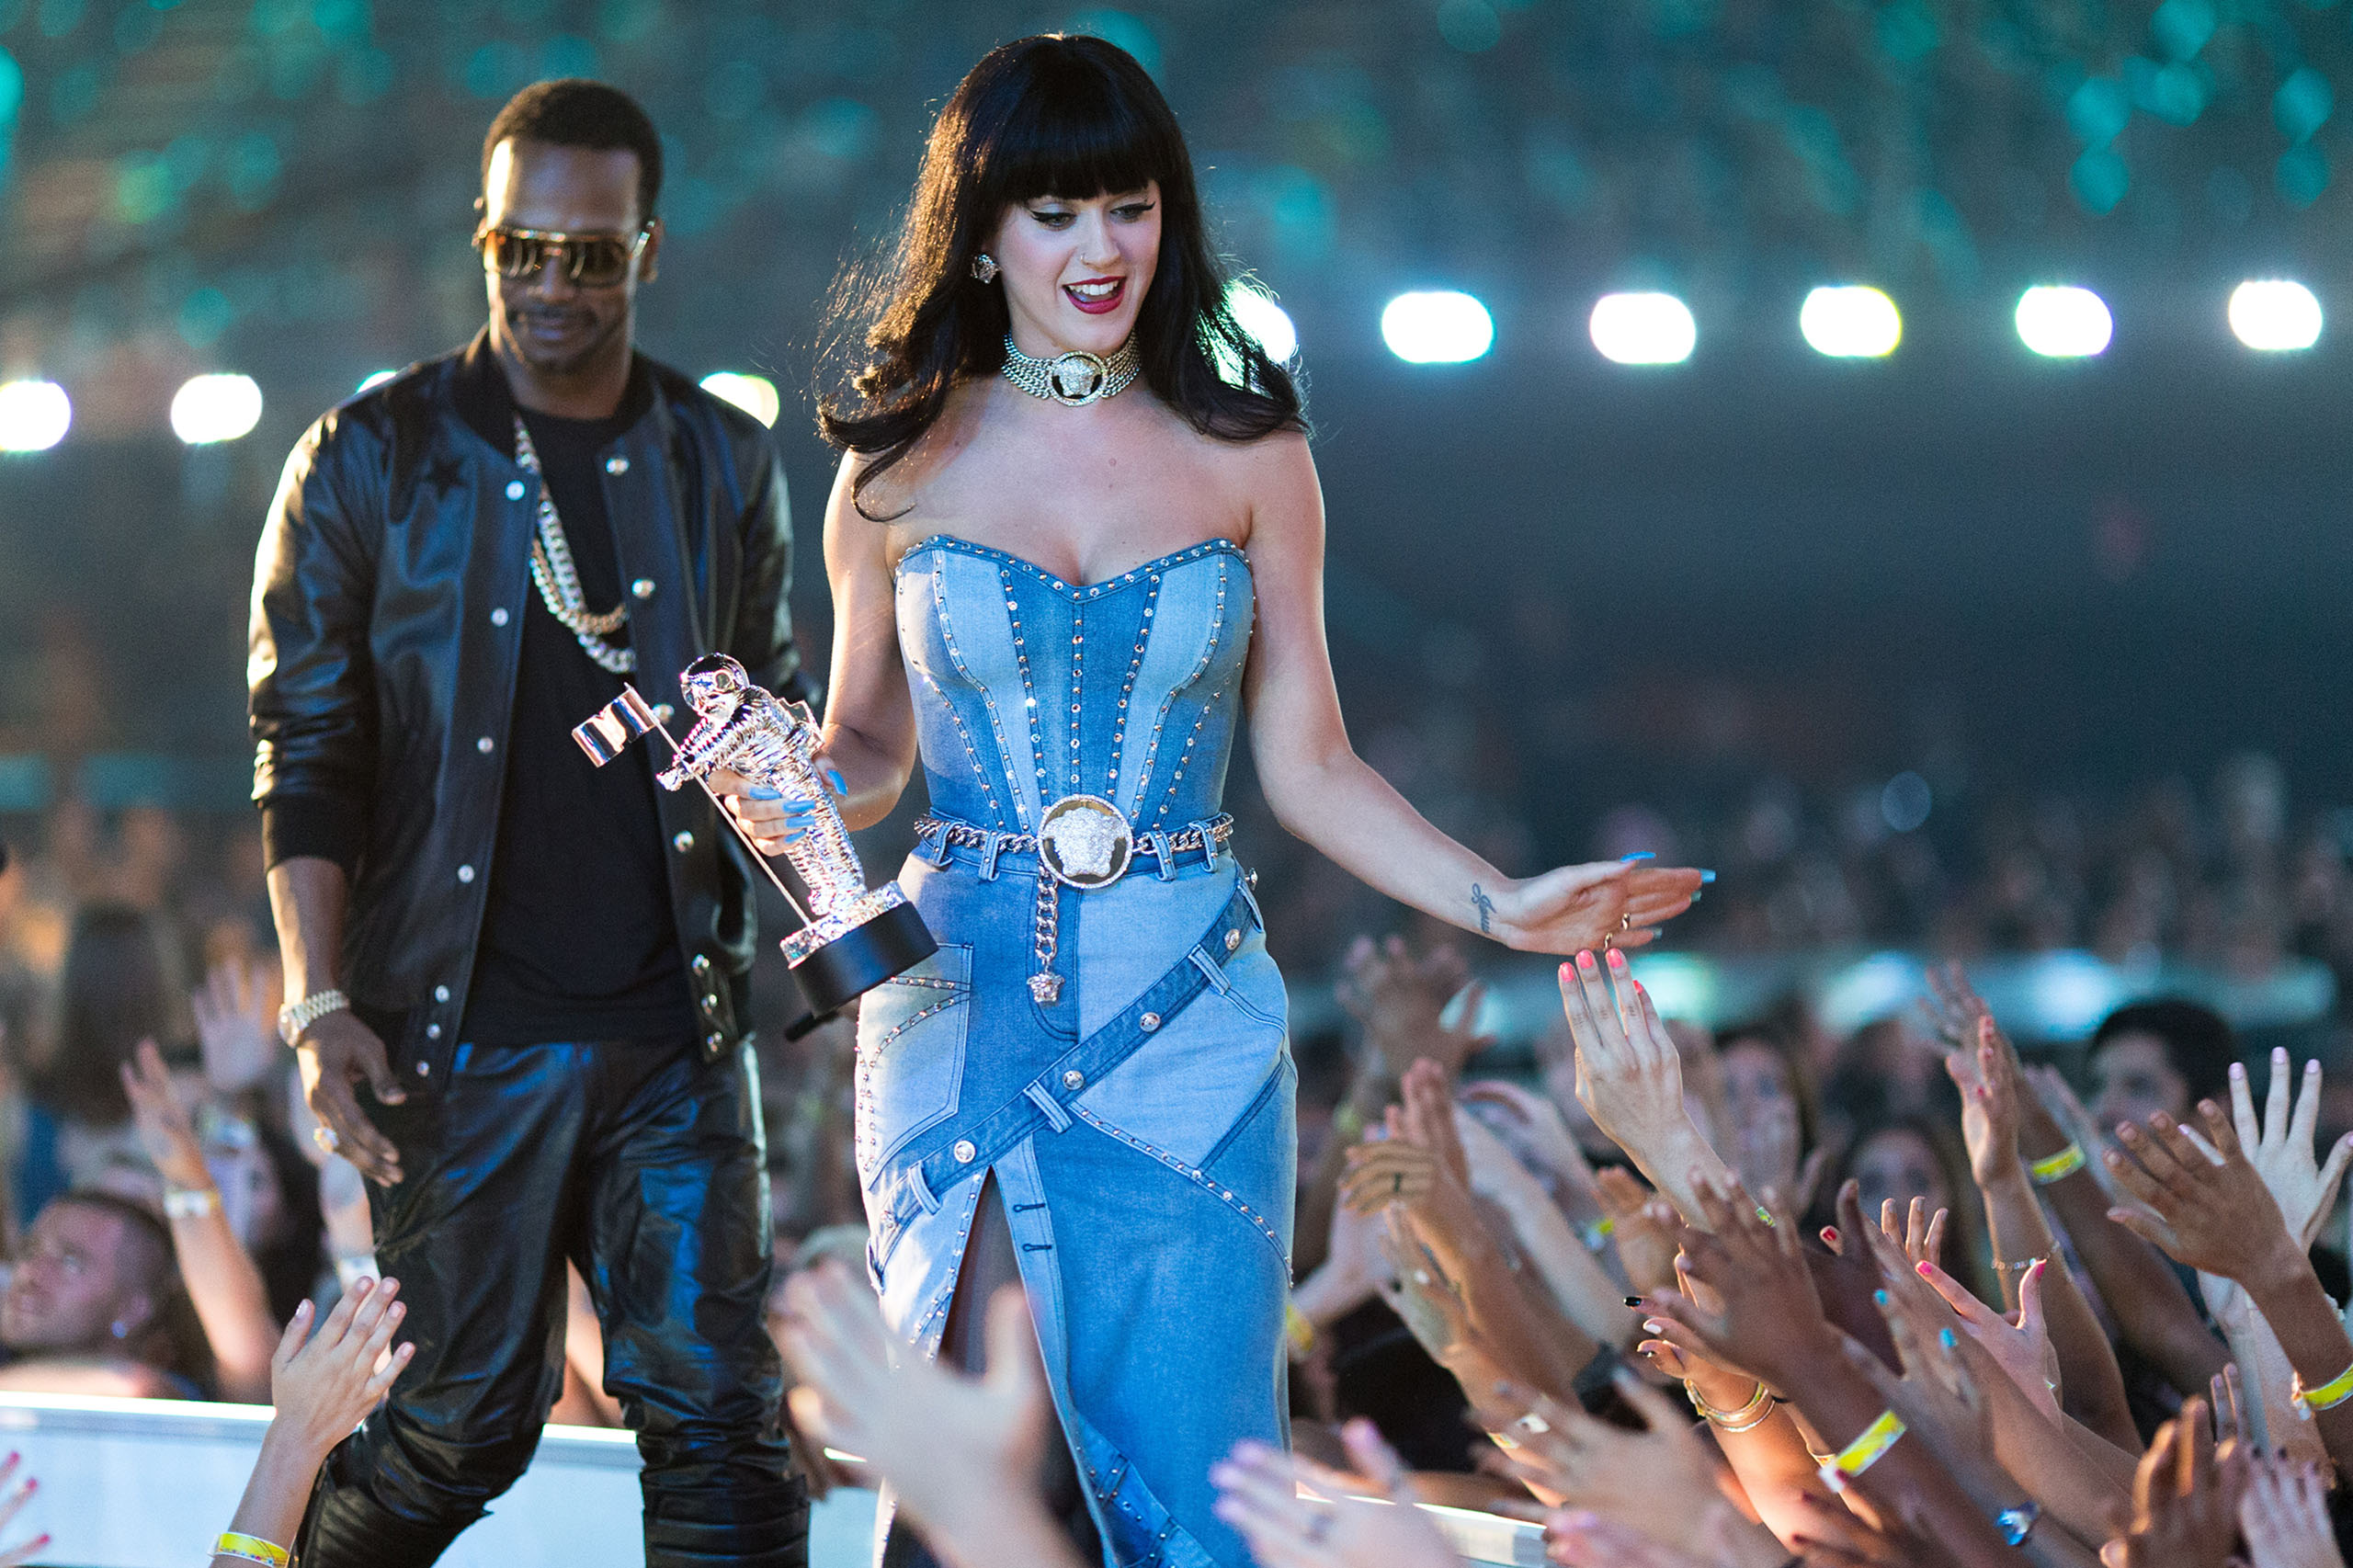 Katy Perry speaks onstage during the 2014 MTV Video Music Awards at The Forum in Inglewood, Calif., on Aug. 24, 2014.